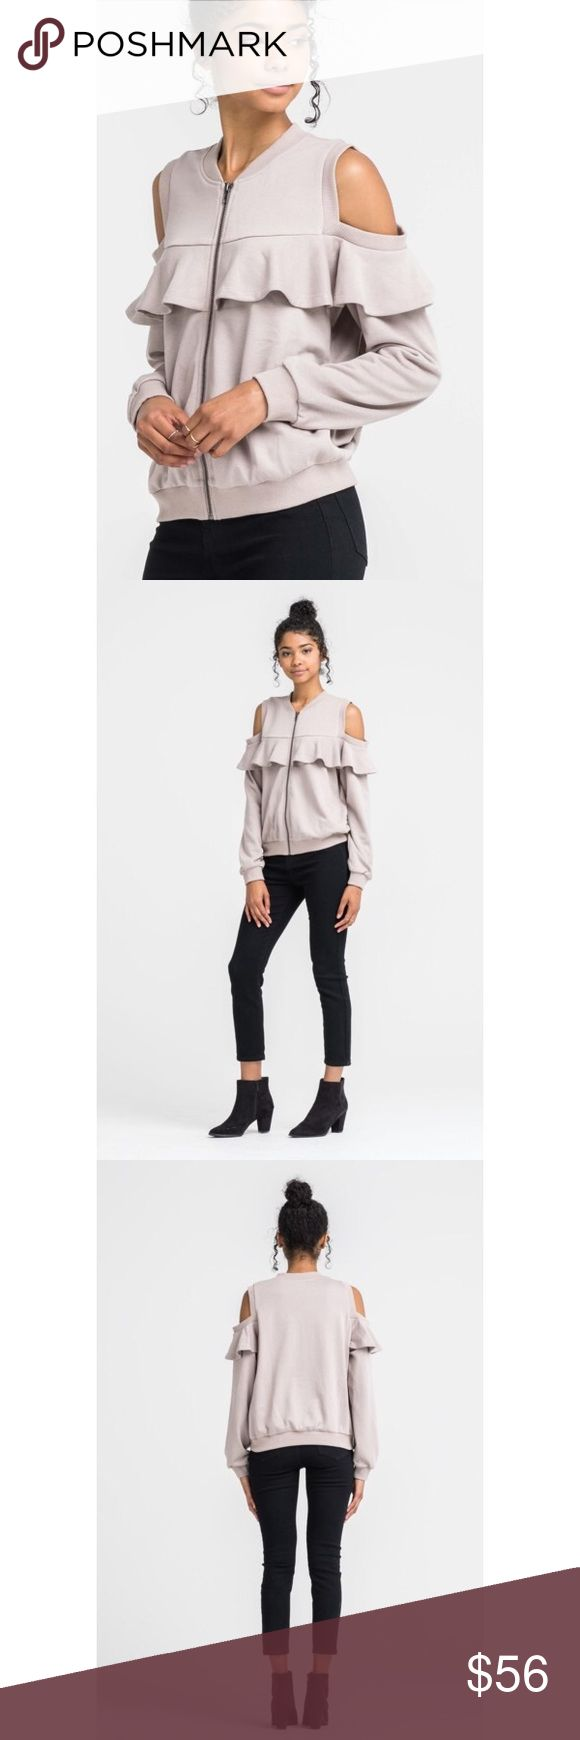 🆕 Josie Cold Shoulder Ruffle ZipUp  - Taupe The Josie Cold Shoulder Ruffle Zip-Up Sweater is an amazing piece to add to your casual wardrobe! Without effort you'll look amazing running errands!  Model is wearing a Small. (Also available in Black)  80% POLYESTER 20% COTTON . . . If you would like to make an offer, please use the OFFER BUTTON. {10% discount on all 2+ orders} . . FOLLOW US✌🏽️ Insta 📸: @likenarly Facebook📱: likenarly Website 🌐: likeNarly.com likeNarly Sweaters